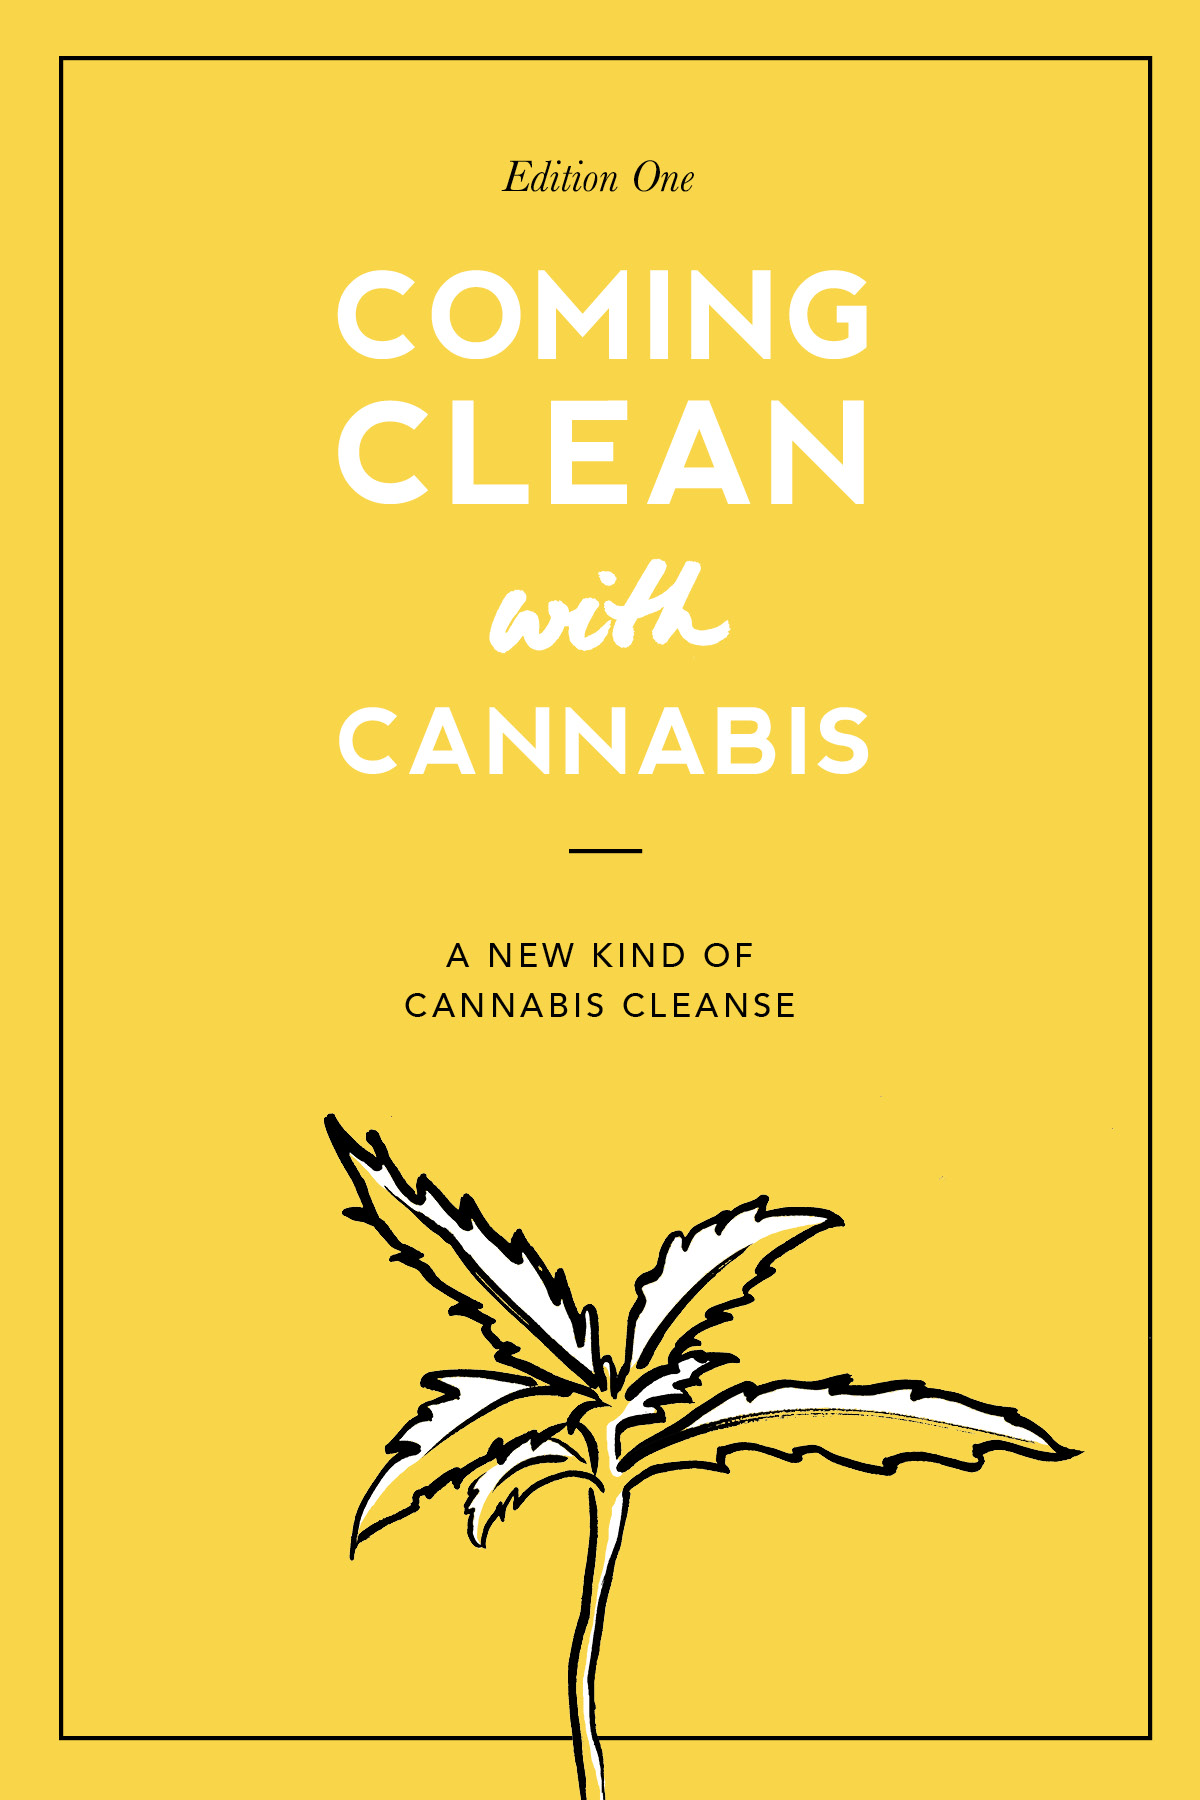 CannabisCleanse-pagesasimages.jpg